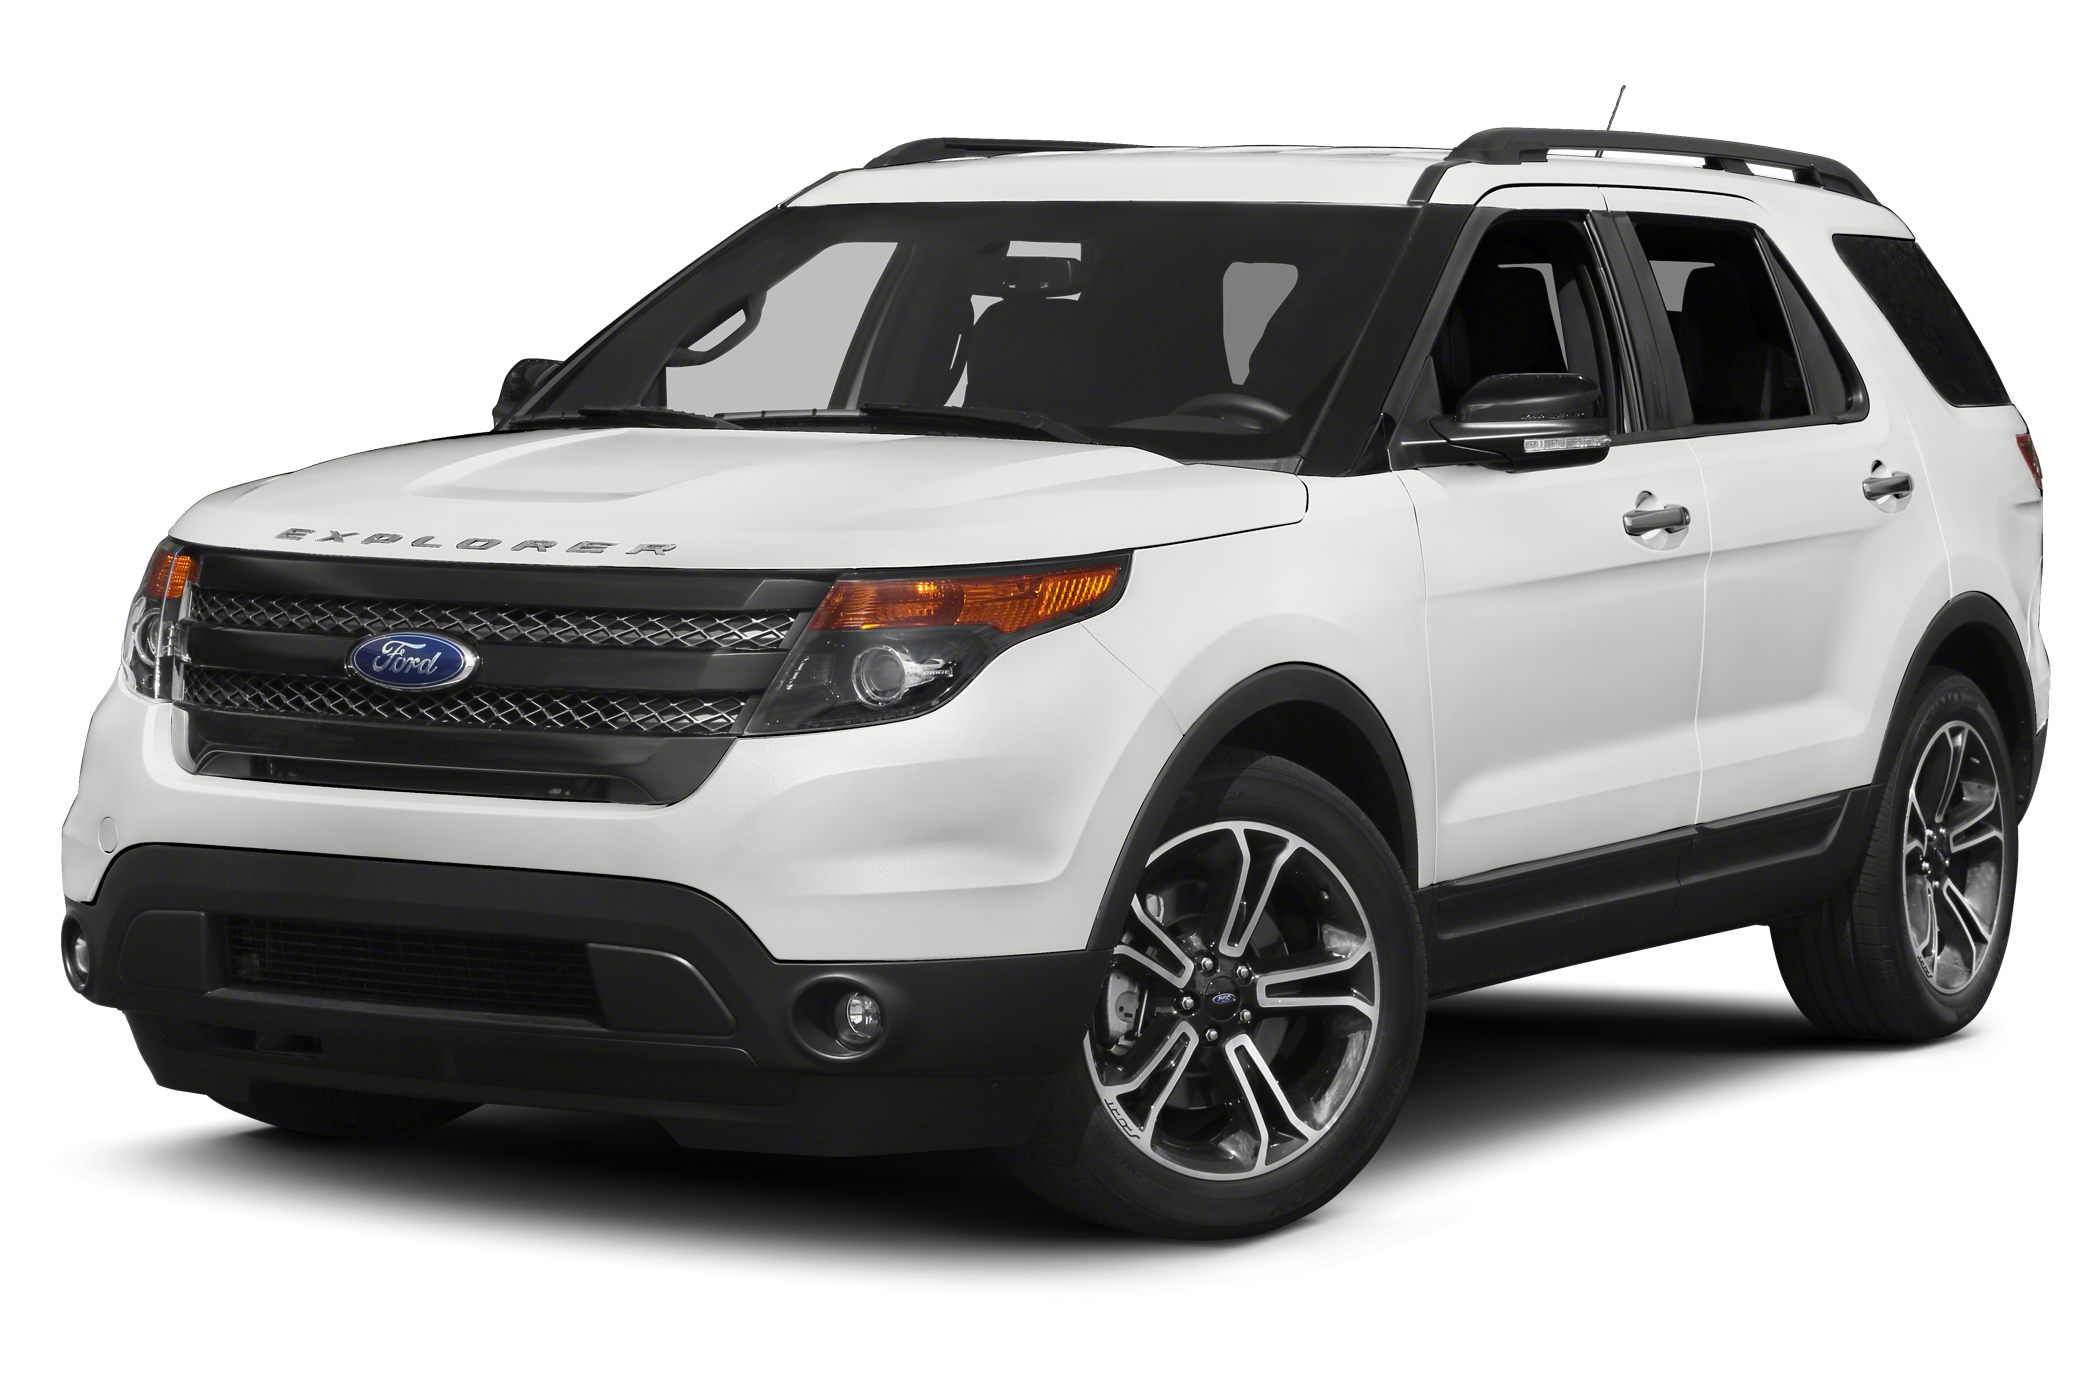 2014 Ford Explorer Sport SUV for sale in White Bear Lake for $40,888 with 8,353 miles.